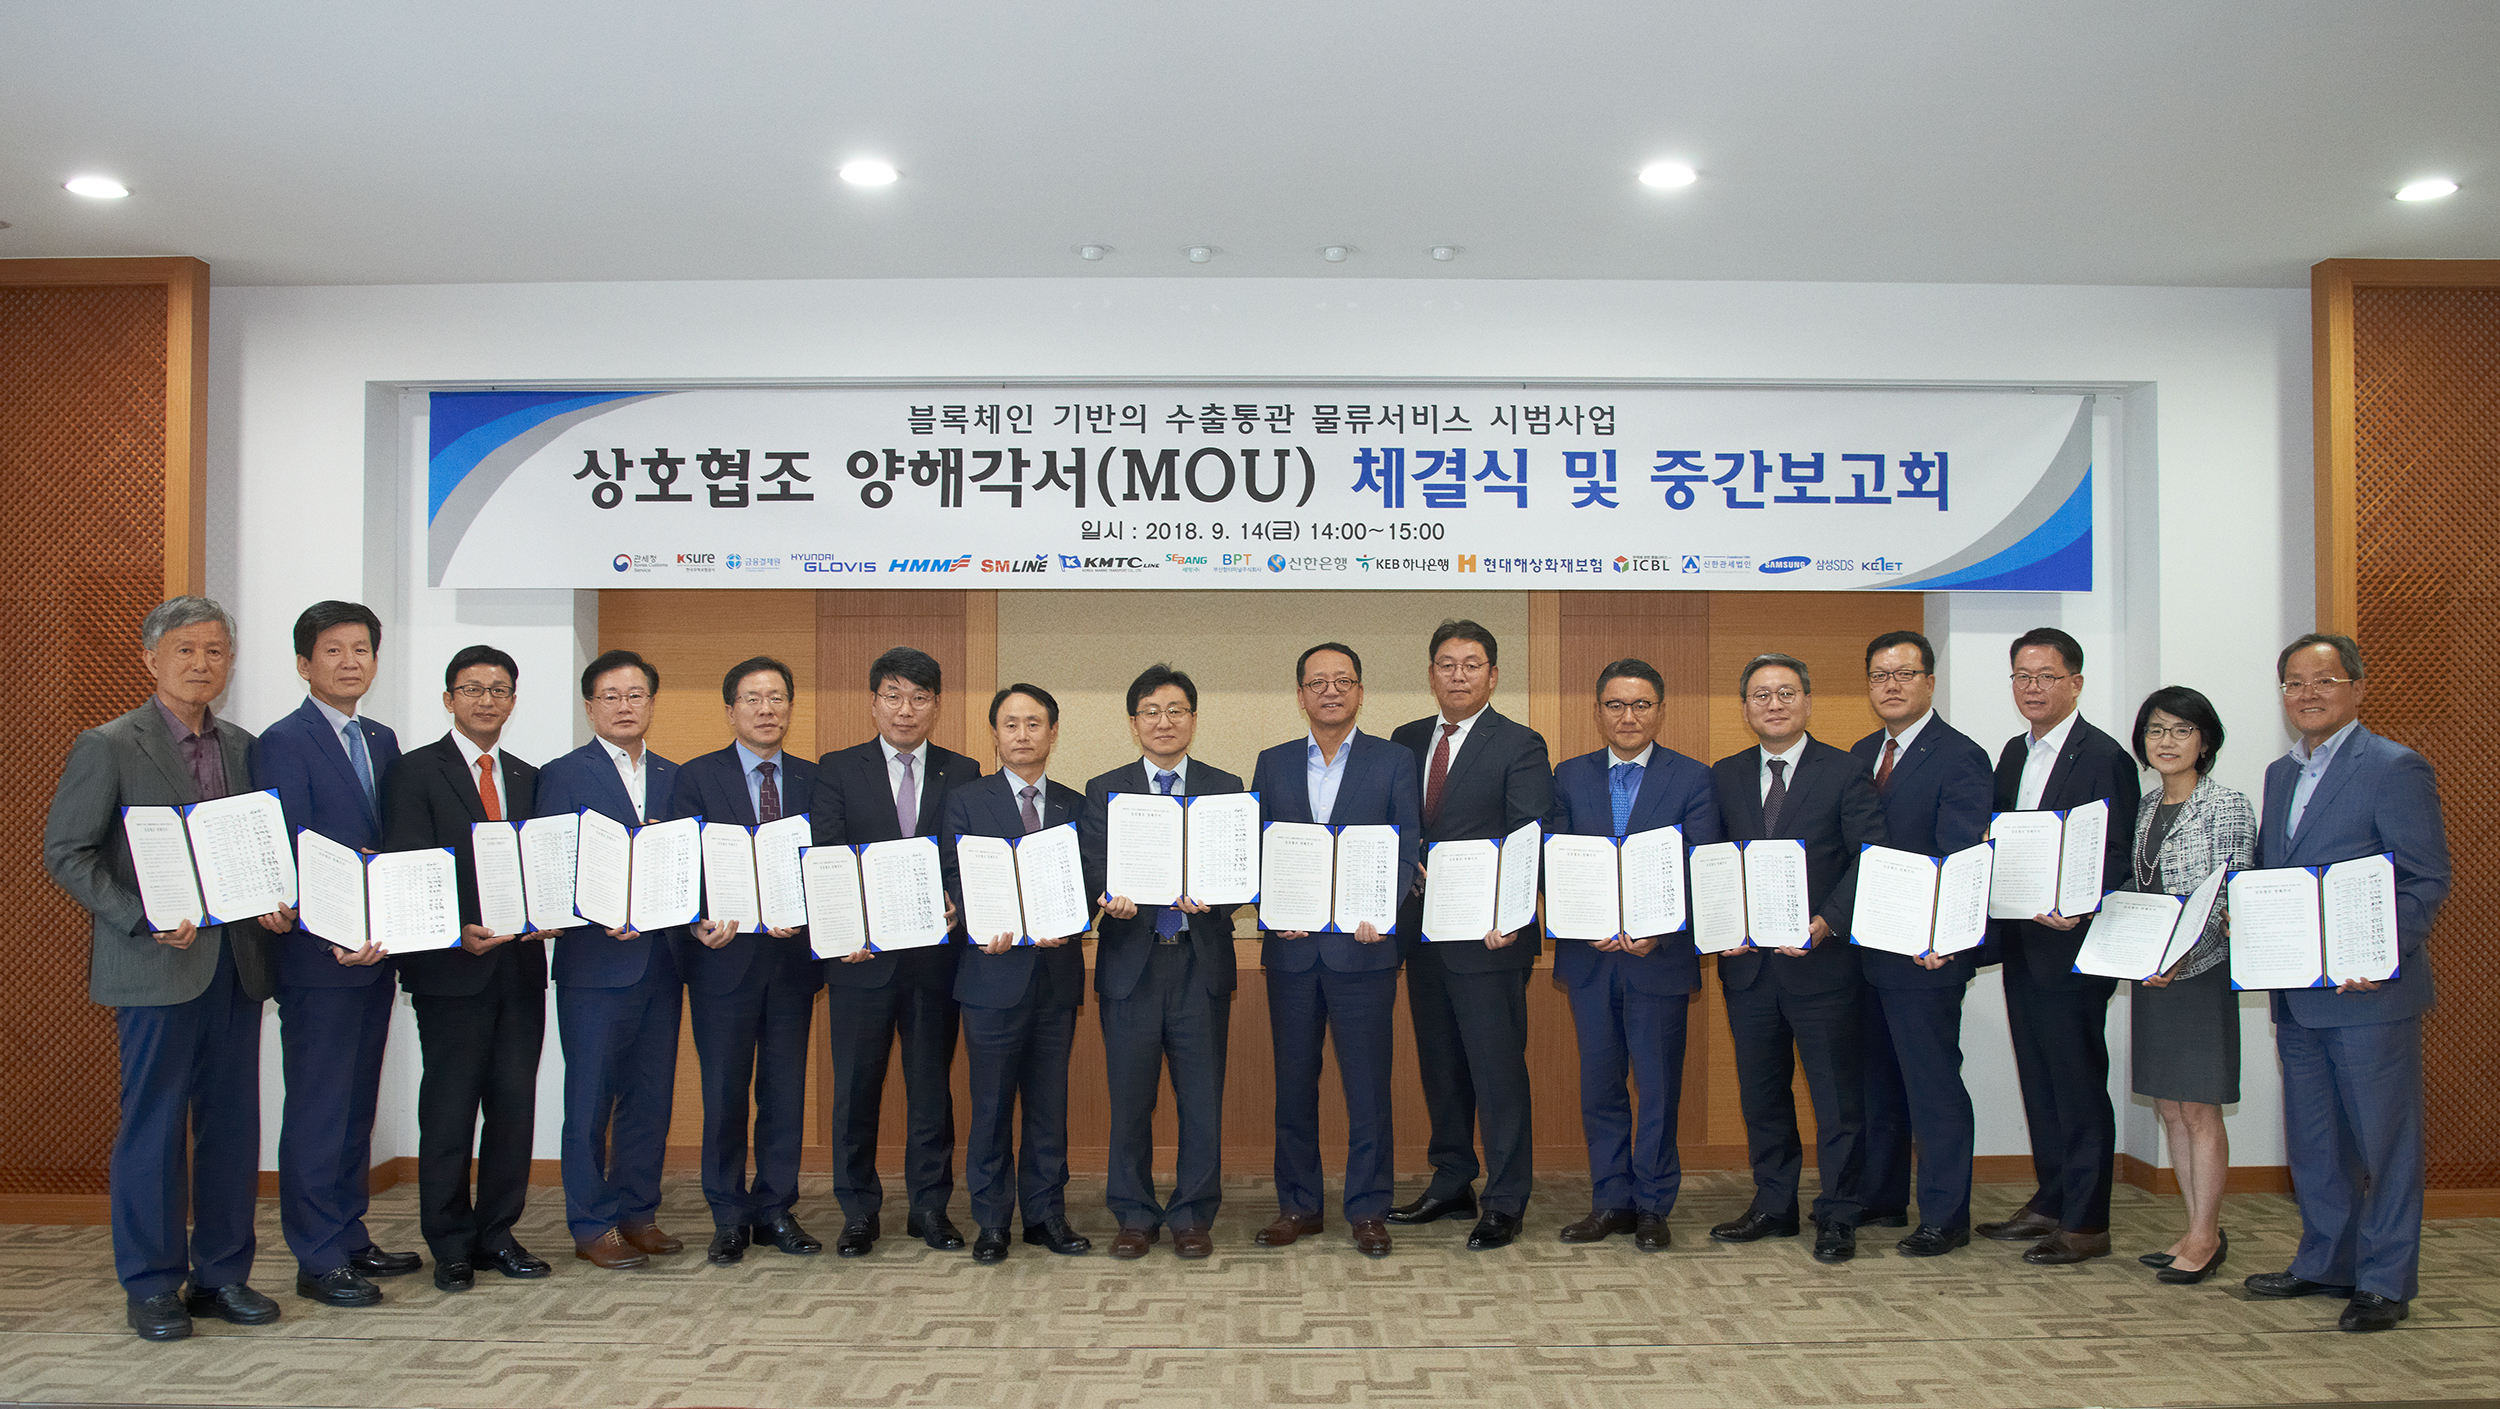 On September 14, Samsung SDS signed an agreement with the Korea Customs Service and 48 relevant government offices and companies to establish the blockchain-based export customs logistics service business. (Kim Hyung-Tae, 9th from left, who leads the logistics business unit of Samsung SDS)